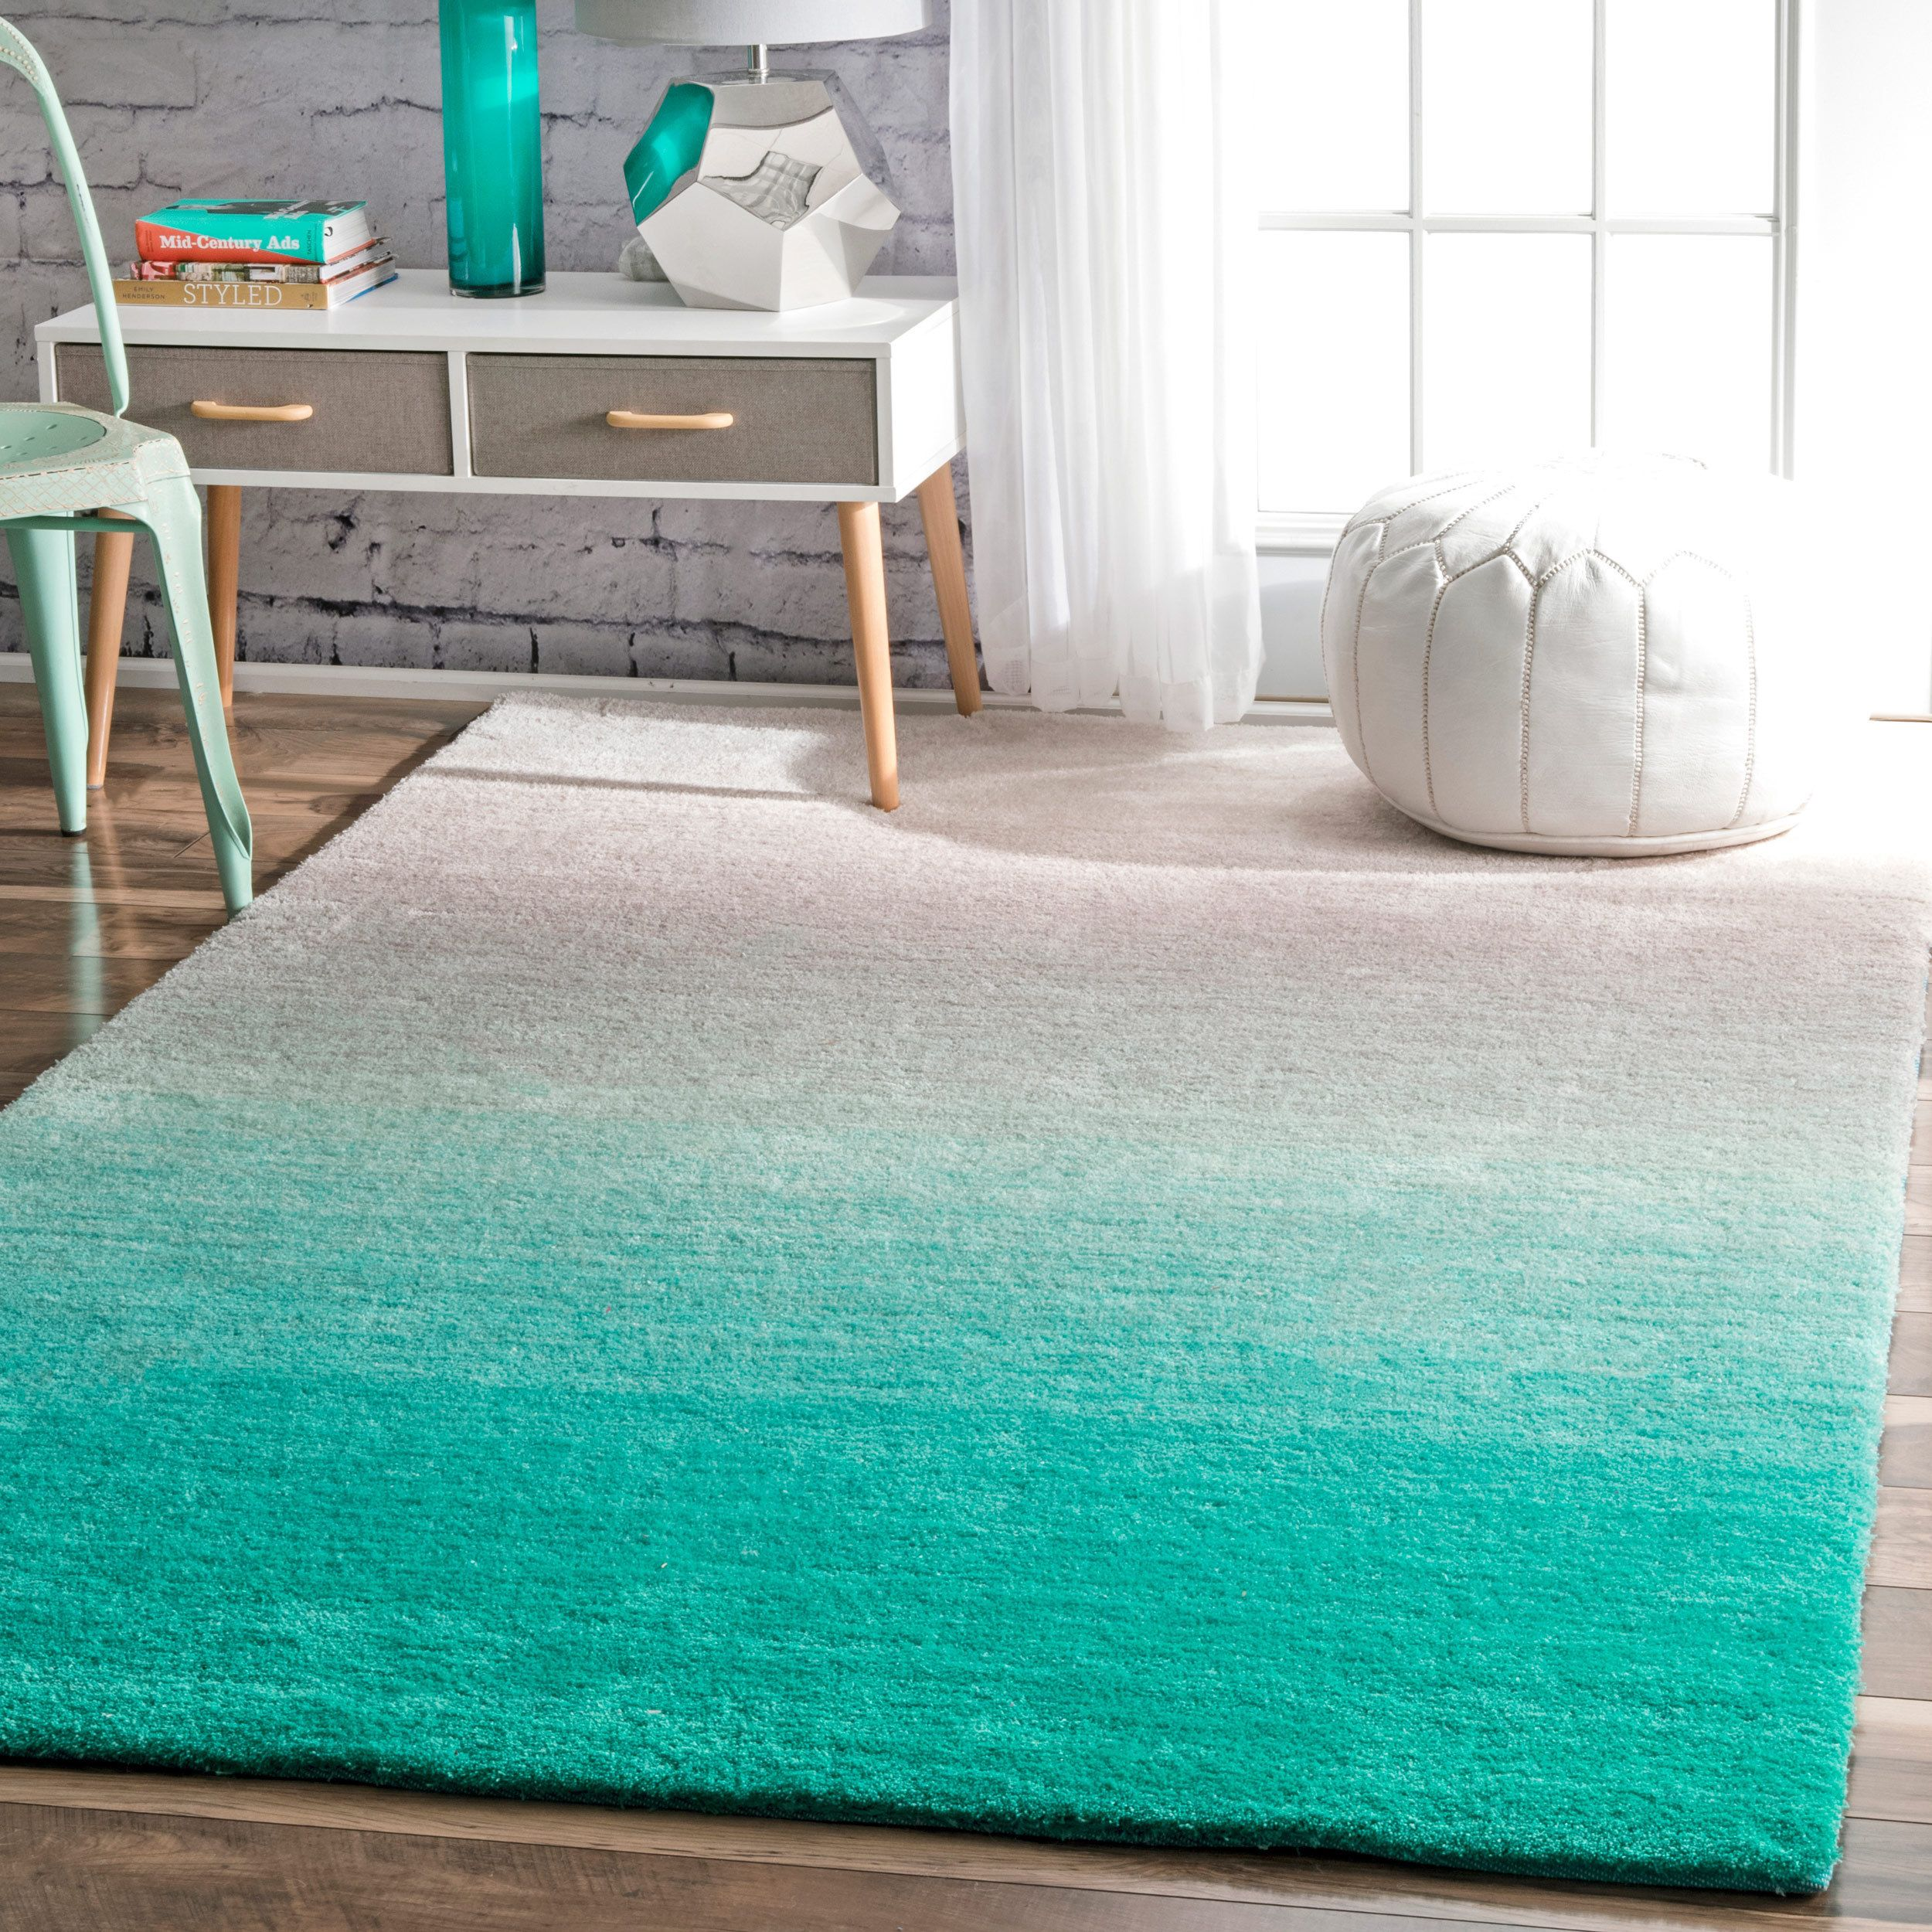 Clay Alder Home Hillsboro Handmade Soft and Plush Ombre Shag Rug 5